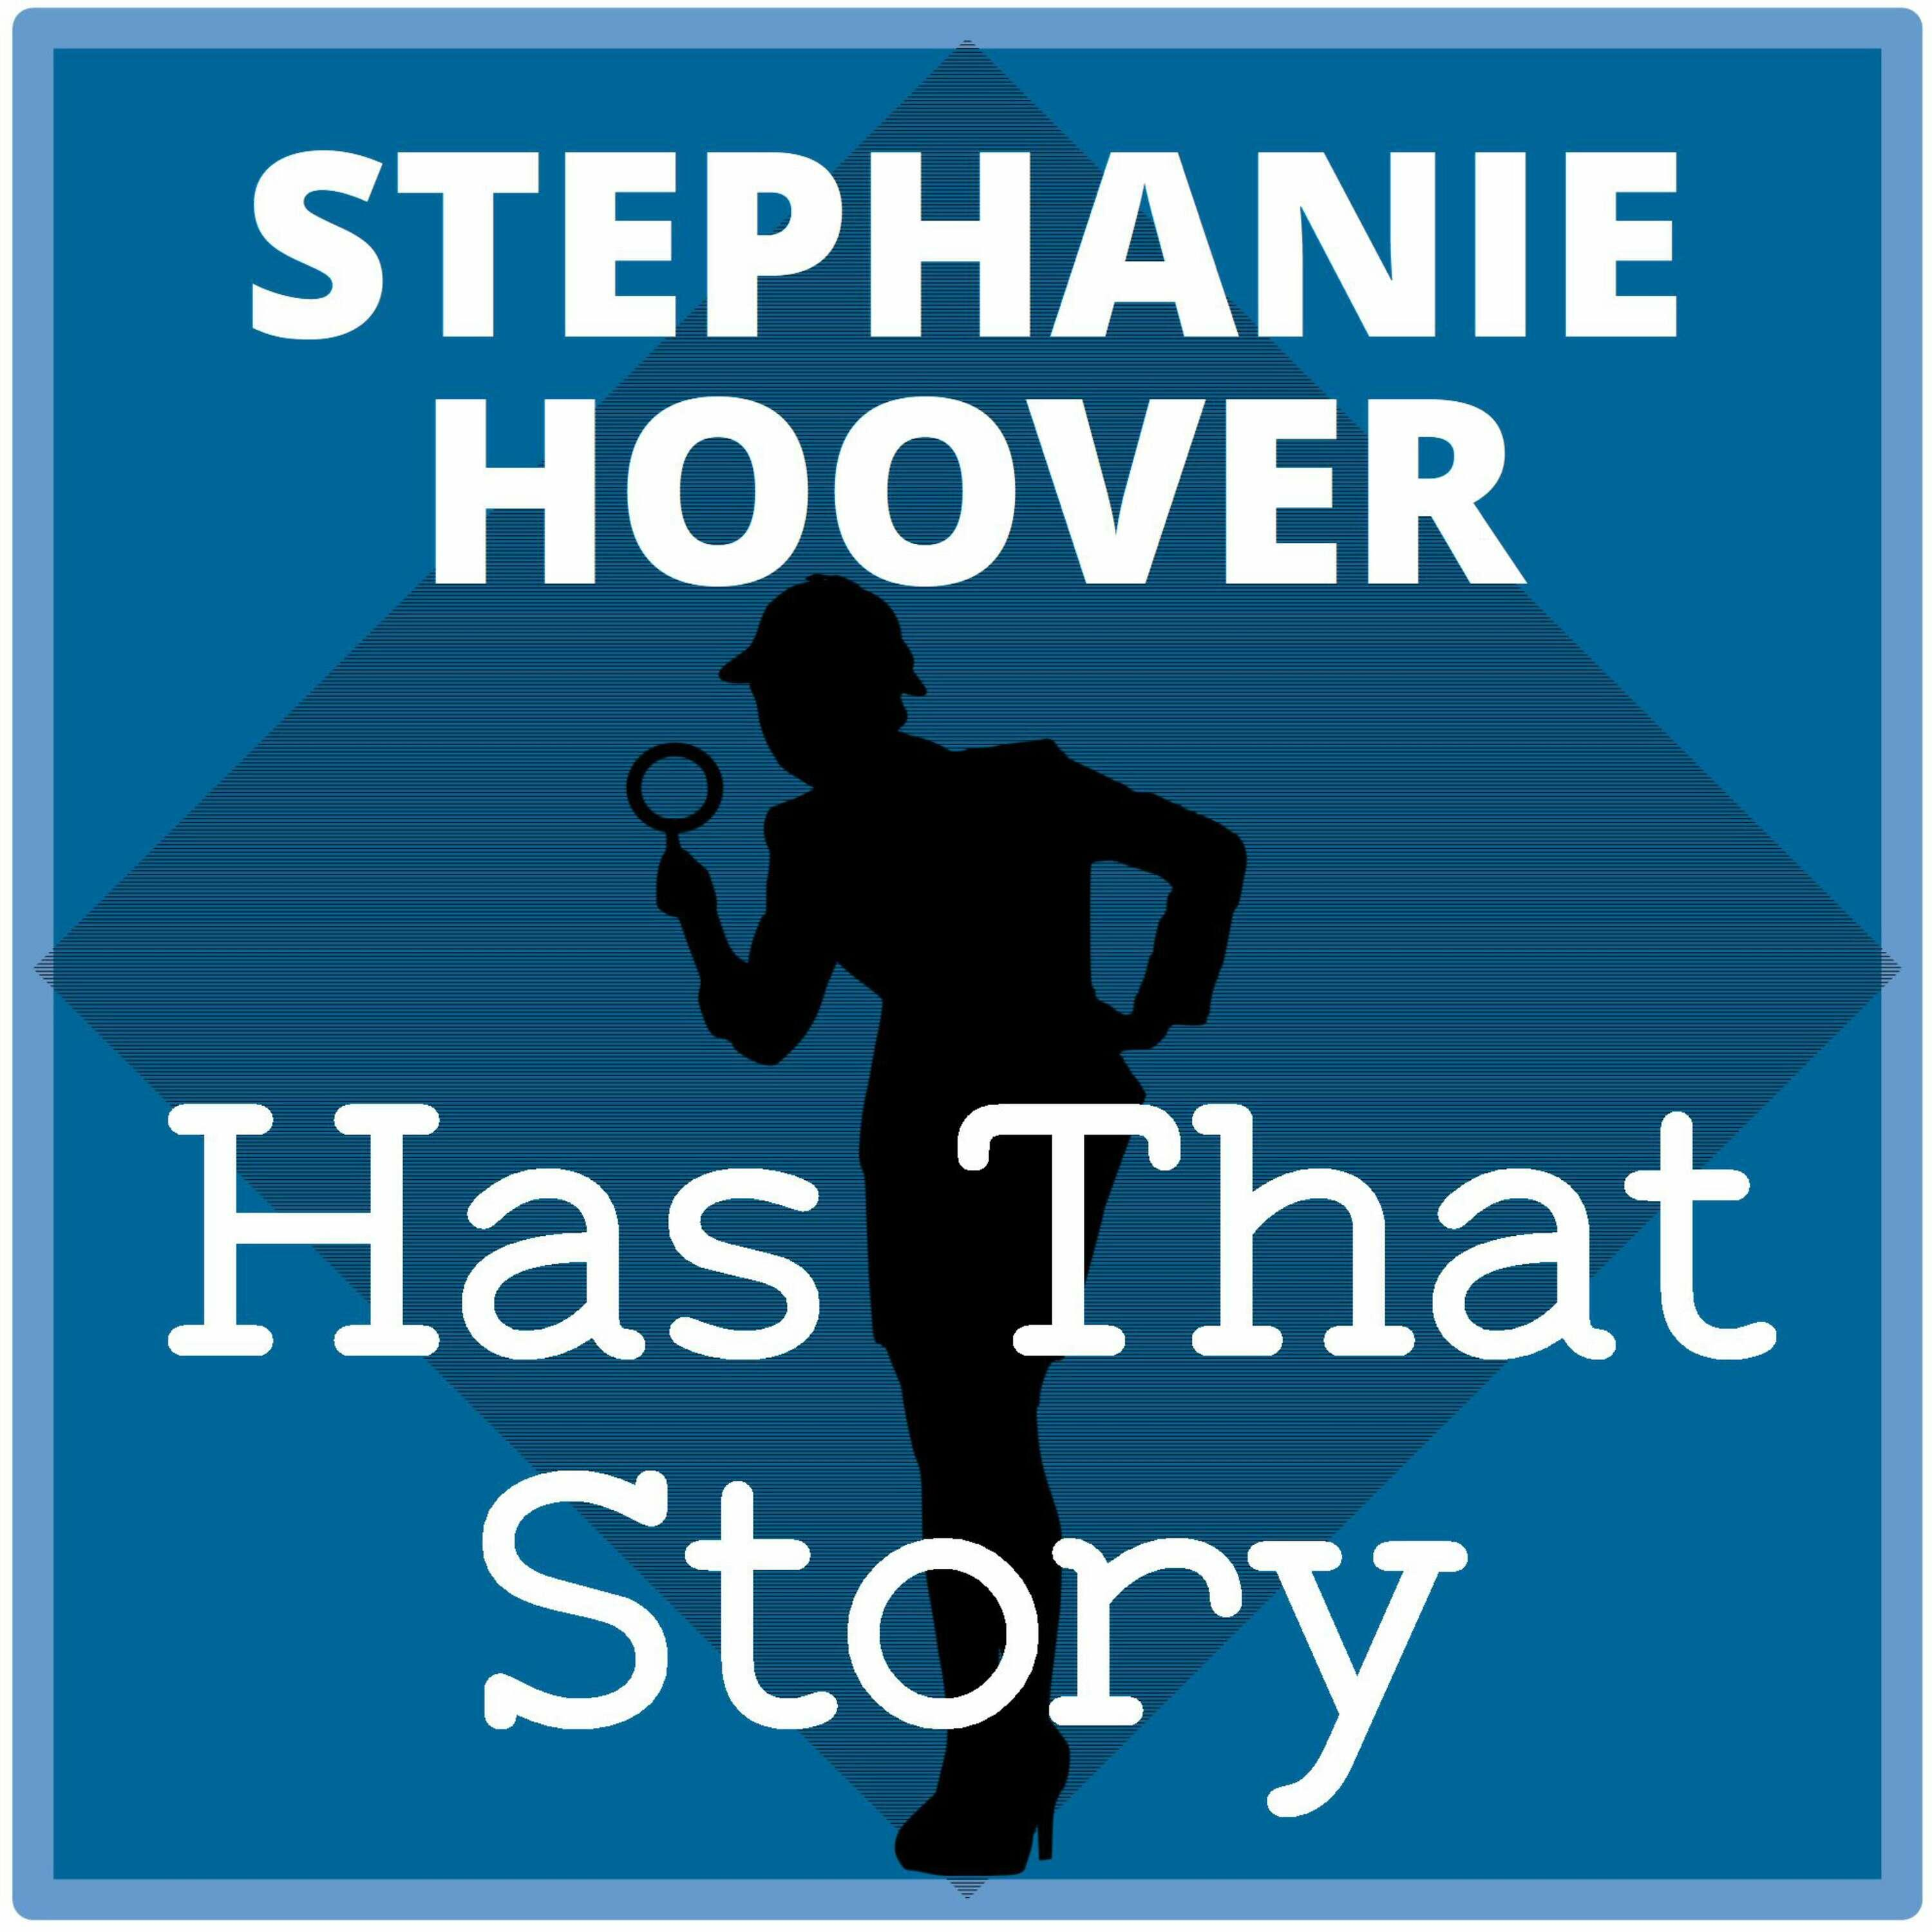 Stephanie Hoover Has That Story